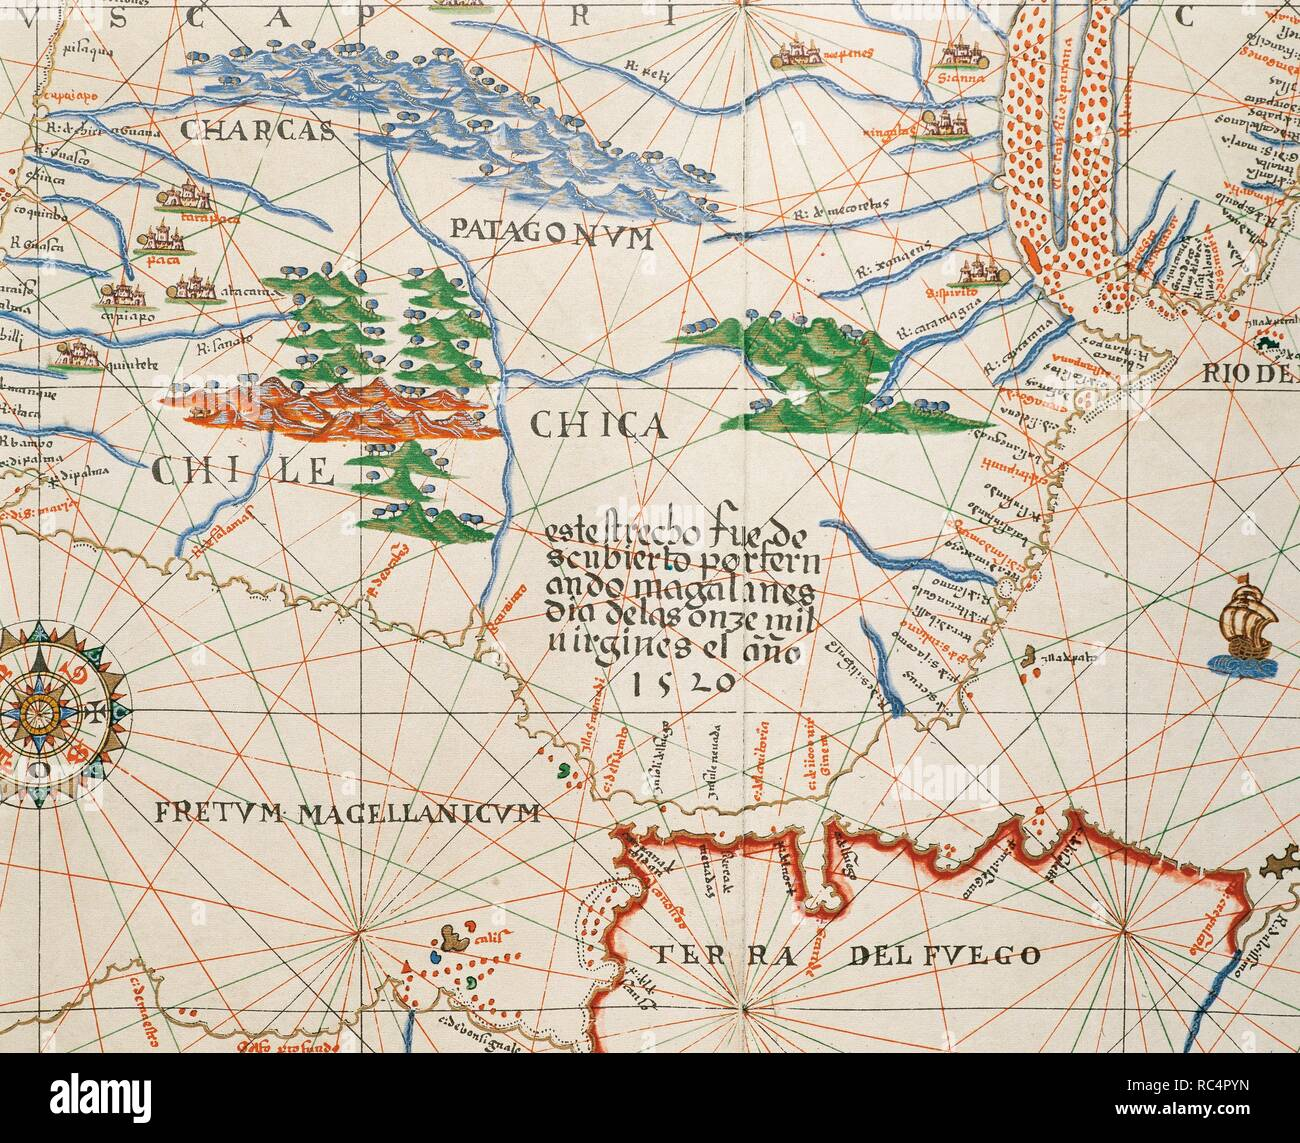 Portolan atlas of the world by Joan Martines (1556-1590). Messina, 1587. Strait of Magellan, Patagonia and Tierra de Fuego. National Library. Madrid. Spain. Stock Photo